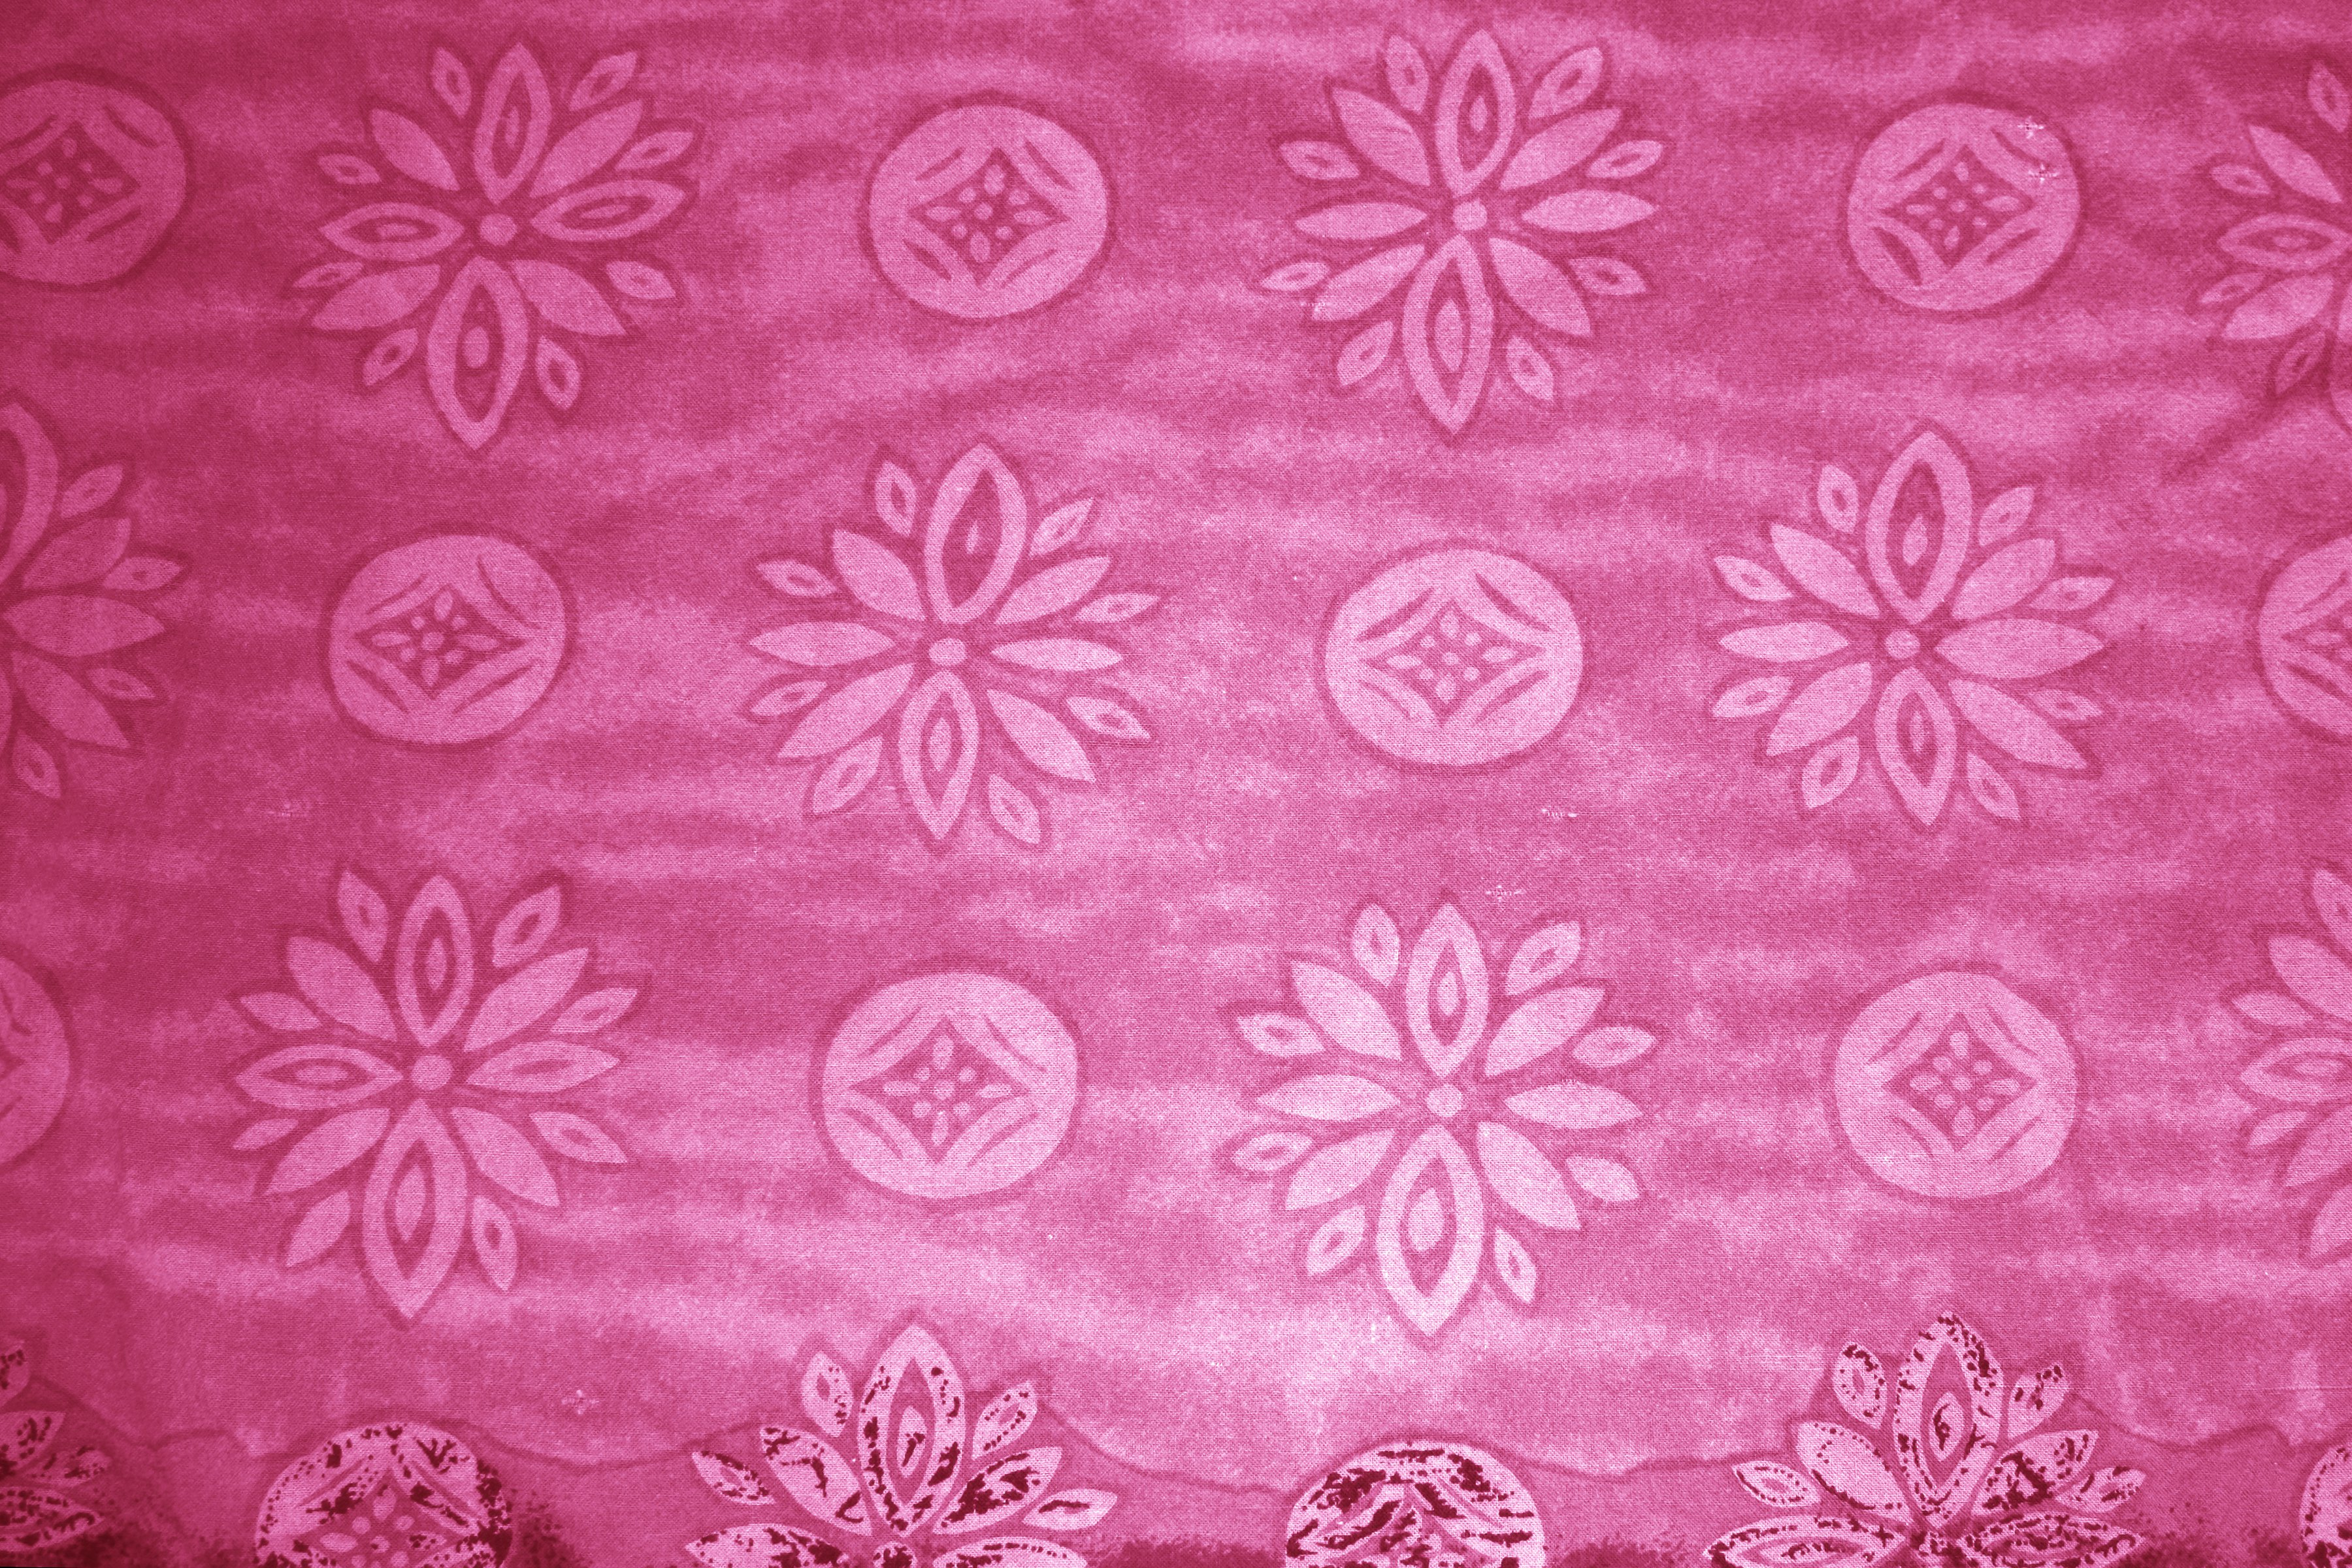 Cherry Red Fabric Texture With Flowers And Circles Picture